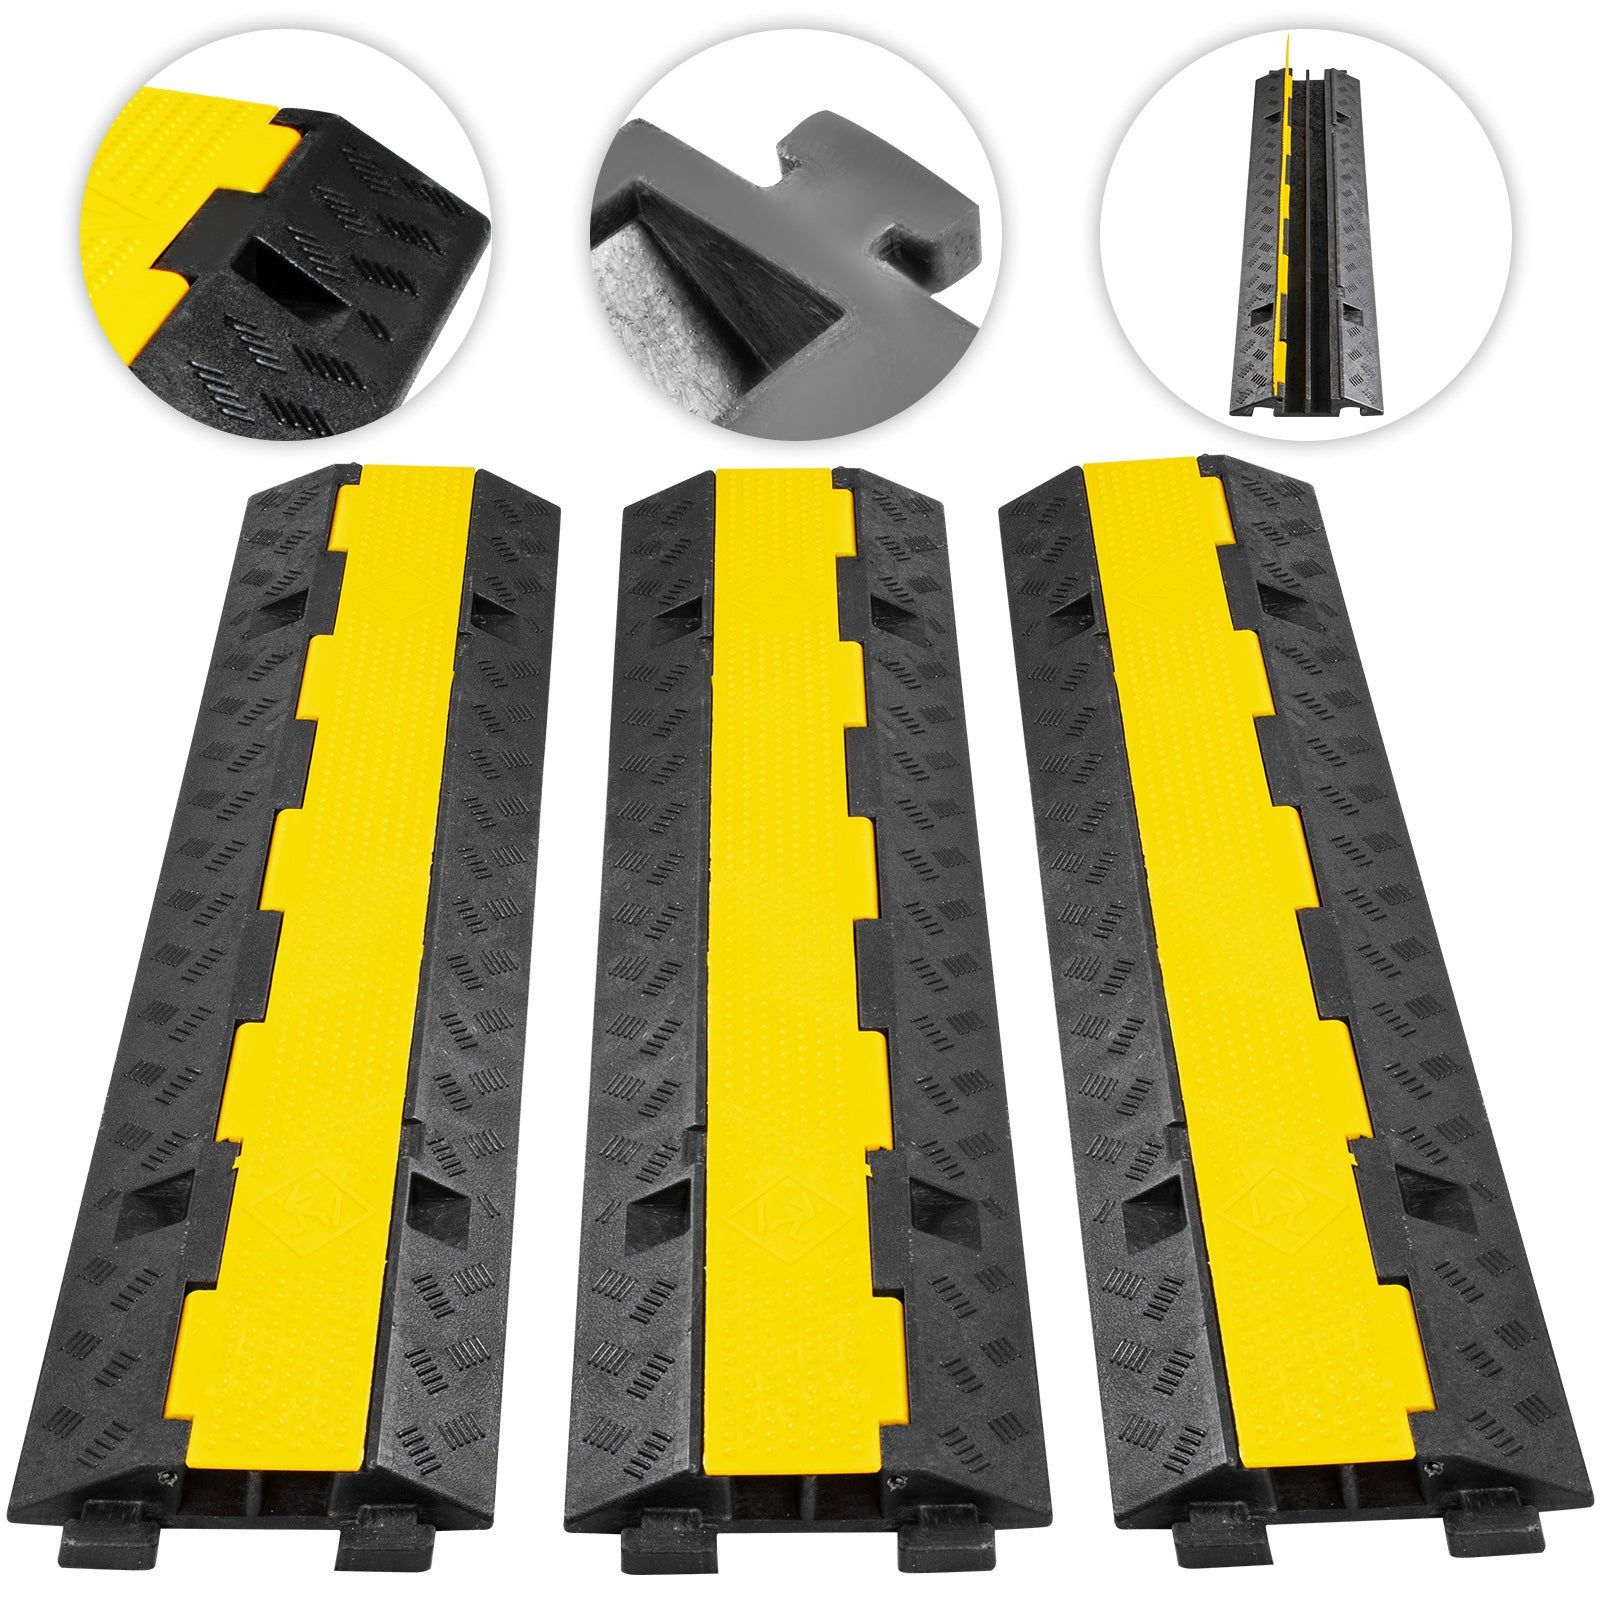 3pcs 2-cable Rubber Warehouse Vehicle Electrical Wire Cover Ramp Protector Snake